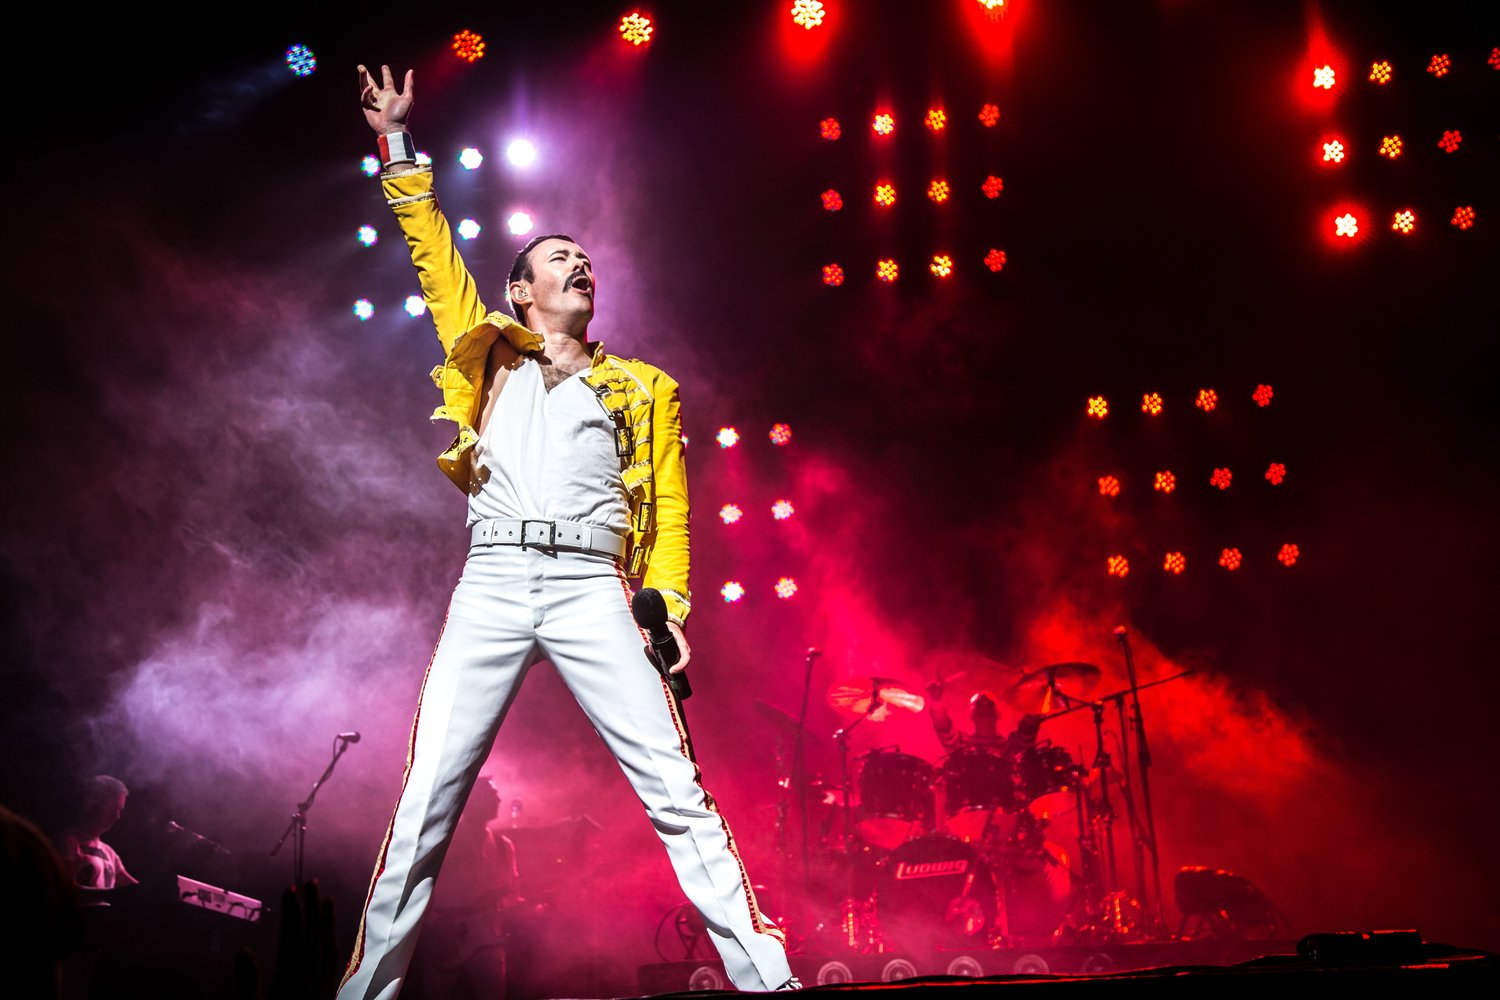 Gary Mullen keeps on rocking in true Freddie Mercury style.